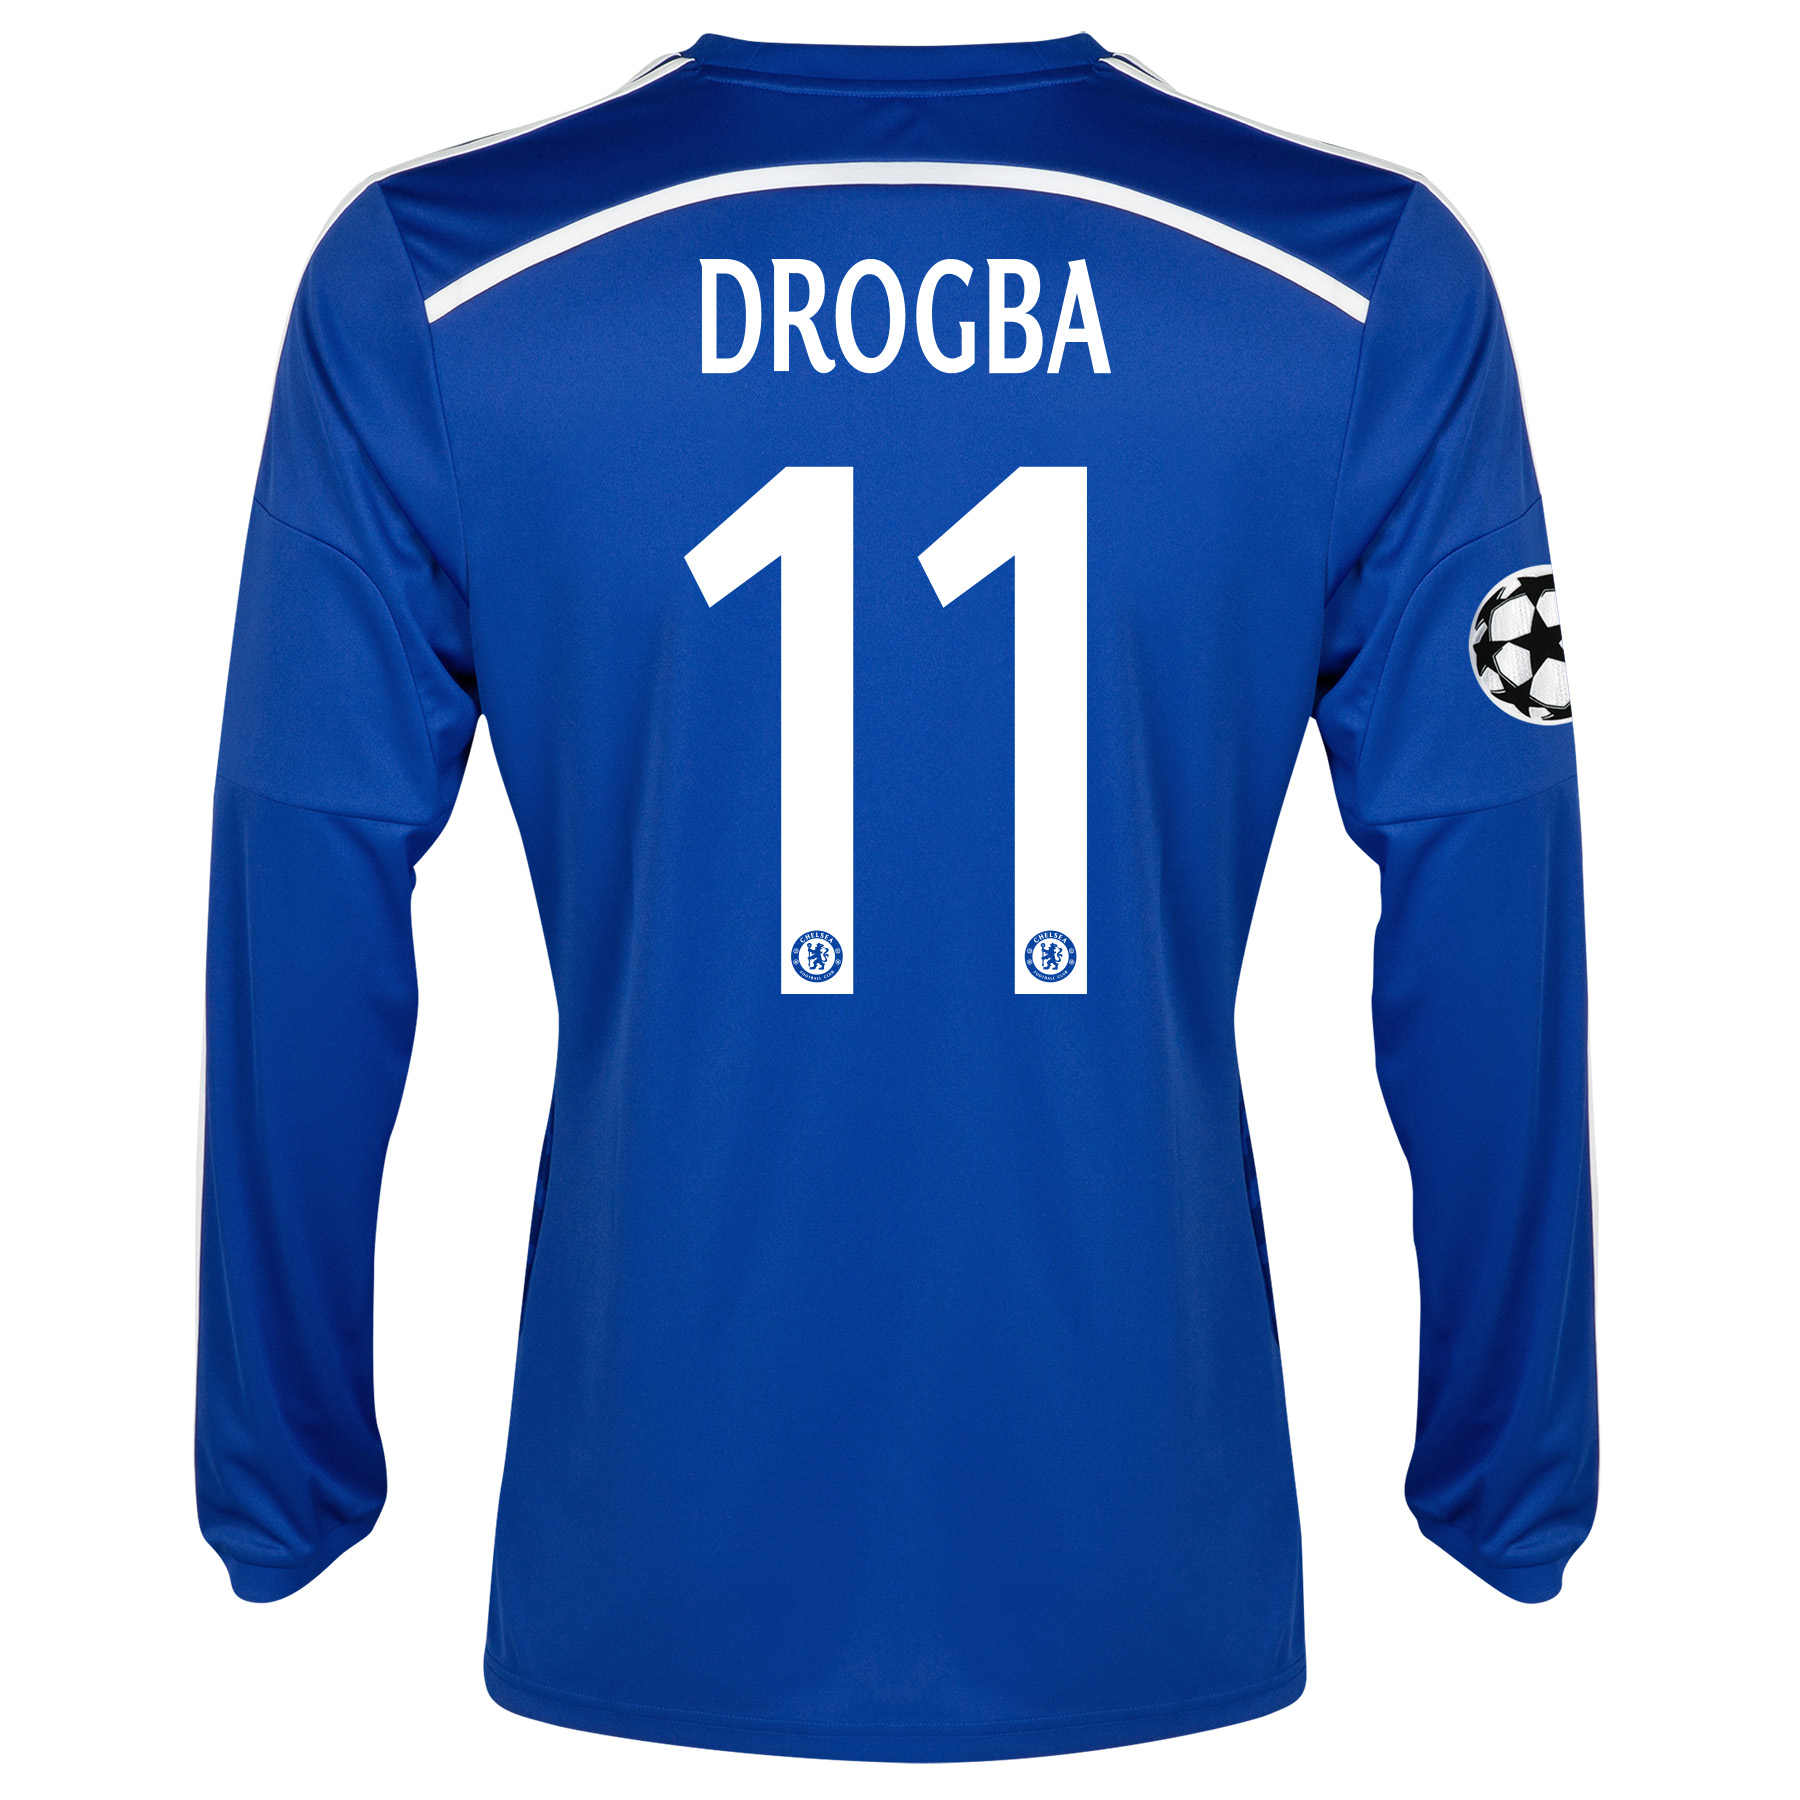 Chelsea Uefa Champions League Home Shirt 2014/15 - Long Sleeve with Drogba 11 printing